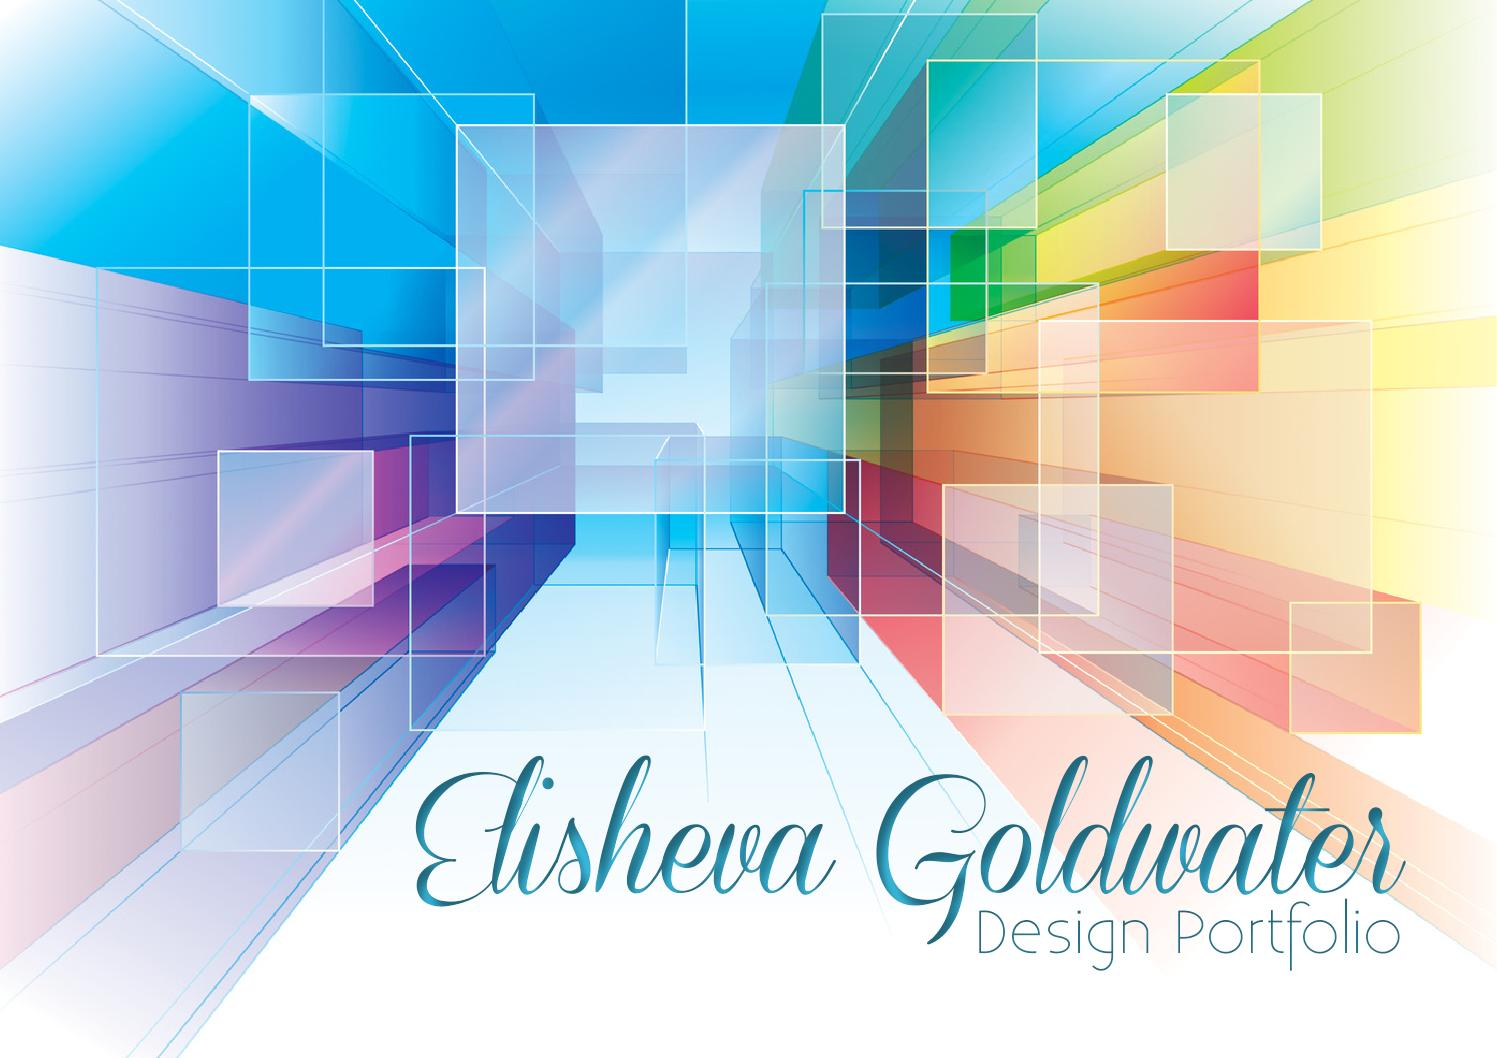 Elisheva Goldwater Portfolio by Design Alive LTD - issuu